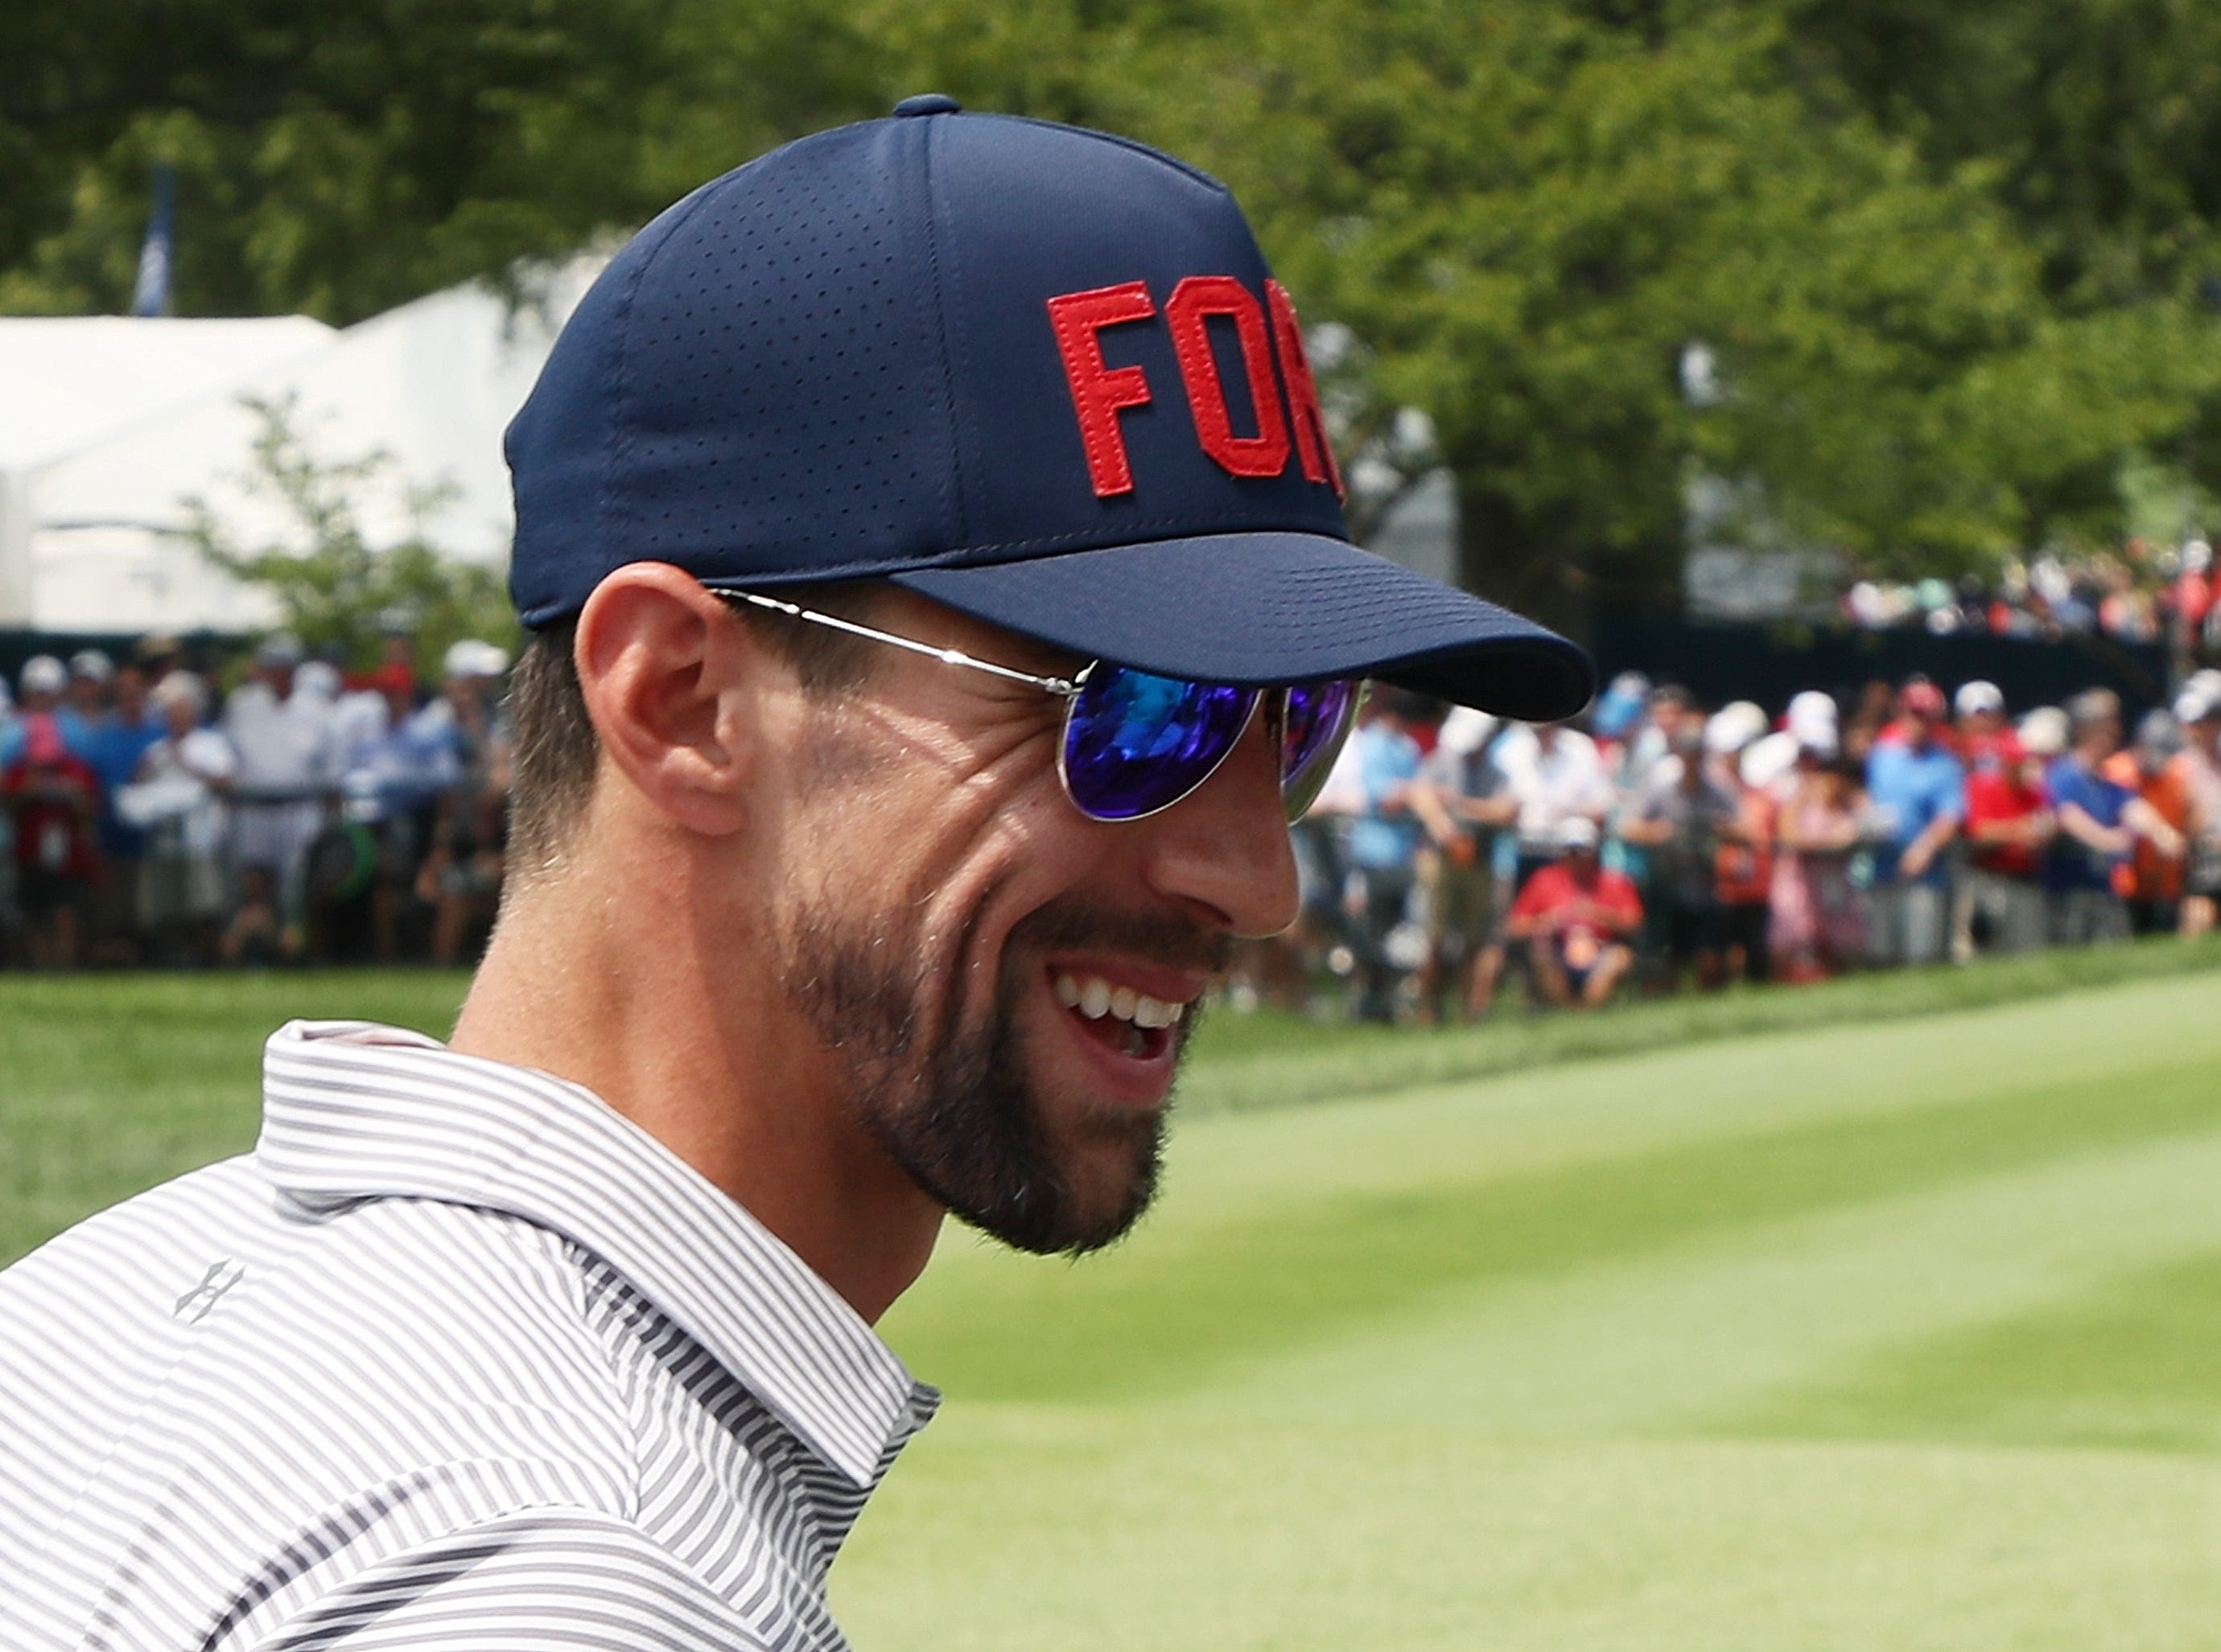 Olympic champion Michael Phelps looks on during the final round of the 2018 PGA Championship at Bellerive Country Club.